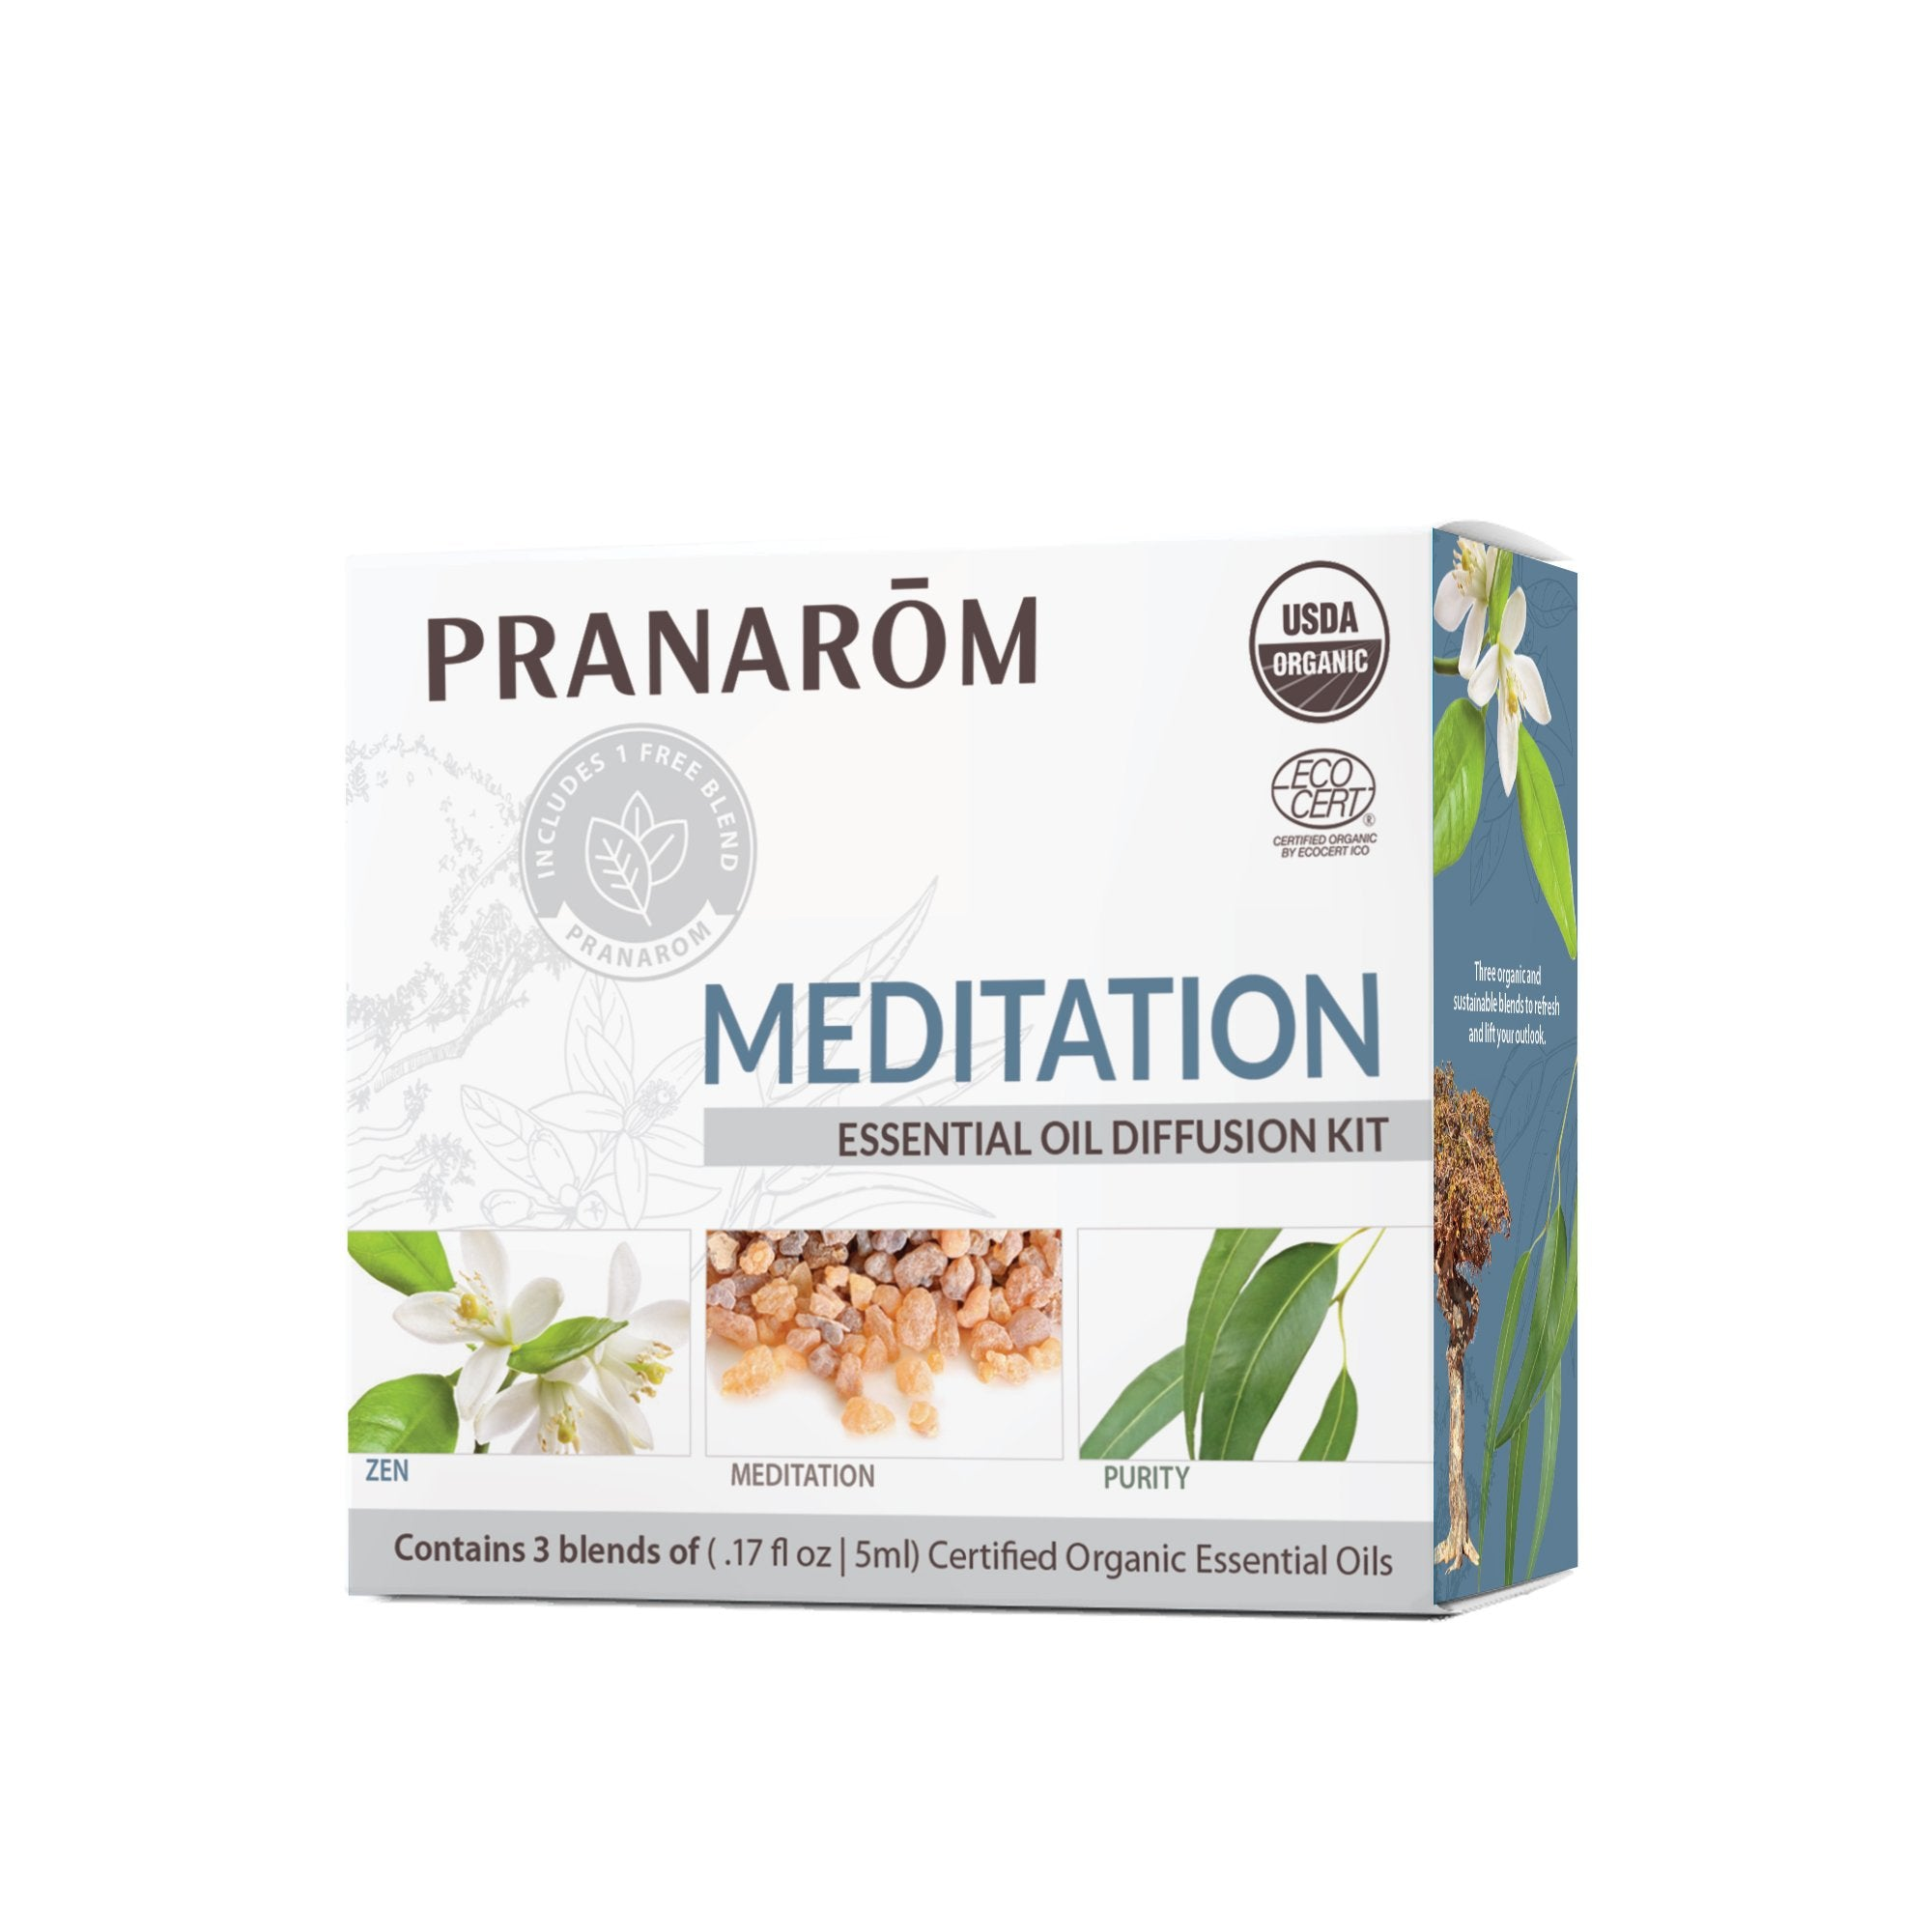 Pranarom Meditation Diffusion Kit